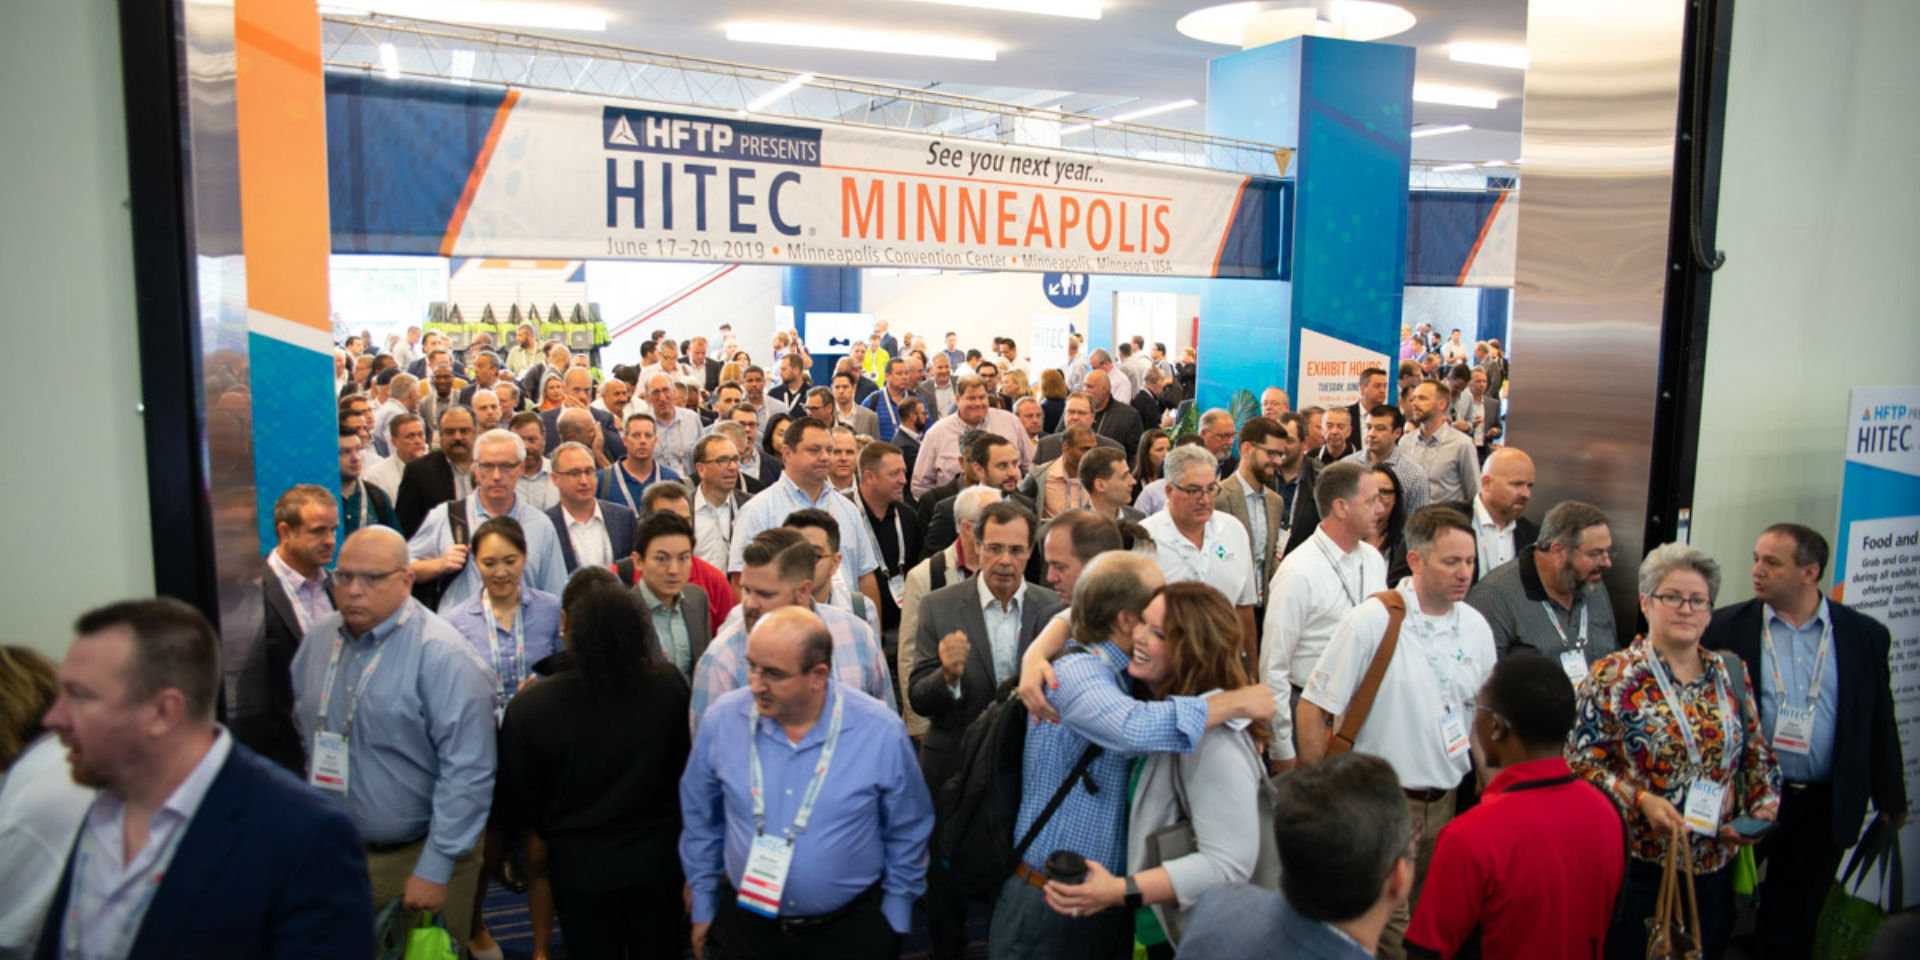 HFTP Heads to Orlando in 2019 and Minneapolis in 2020 for its Upcoming Annual Conventions